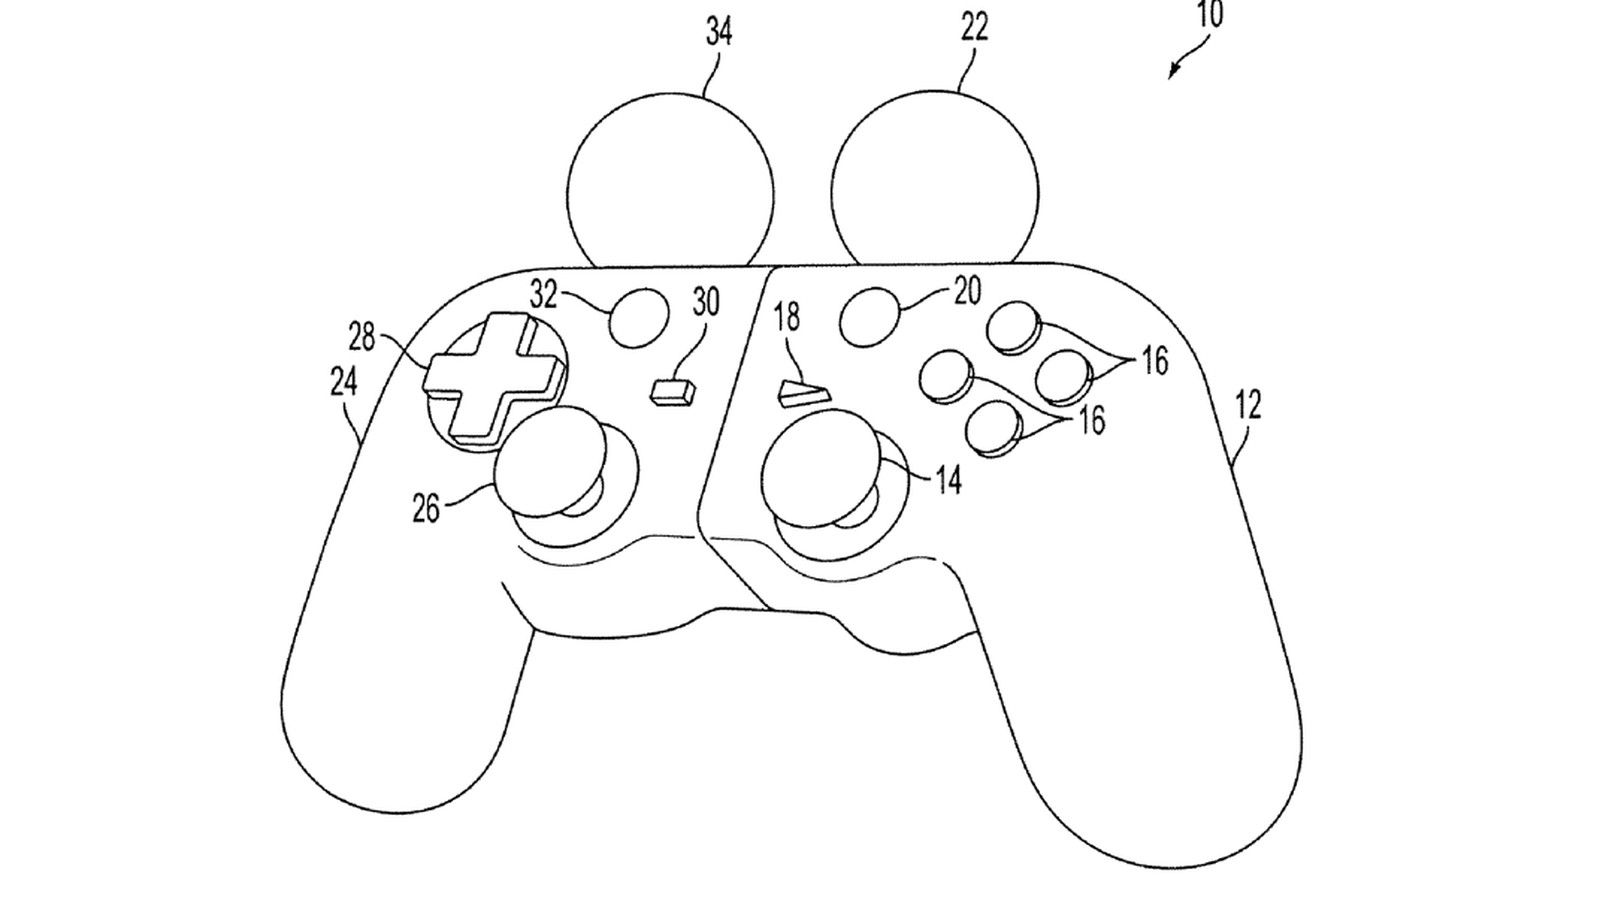 Sony patent shows what a hybrid DualShock/Move controller